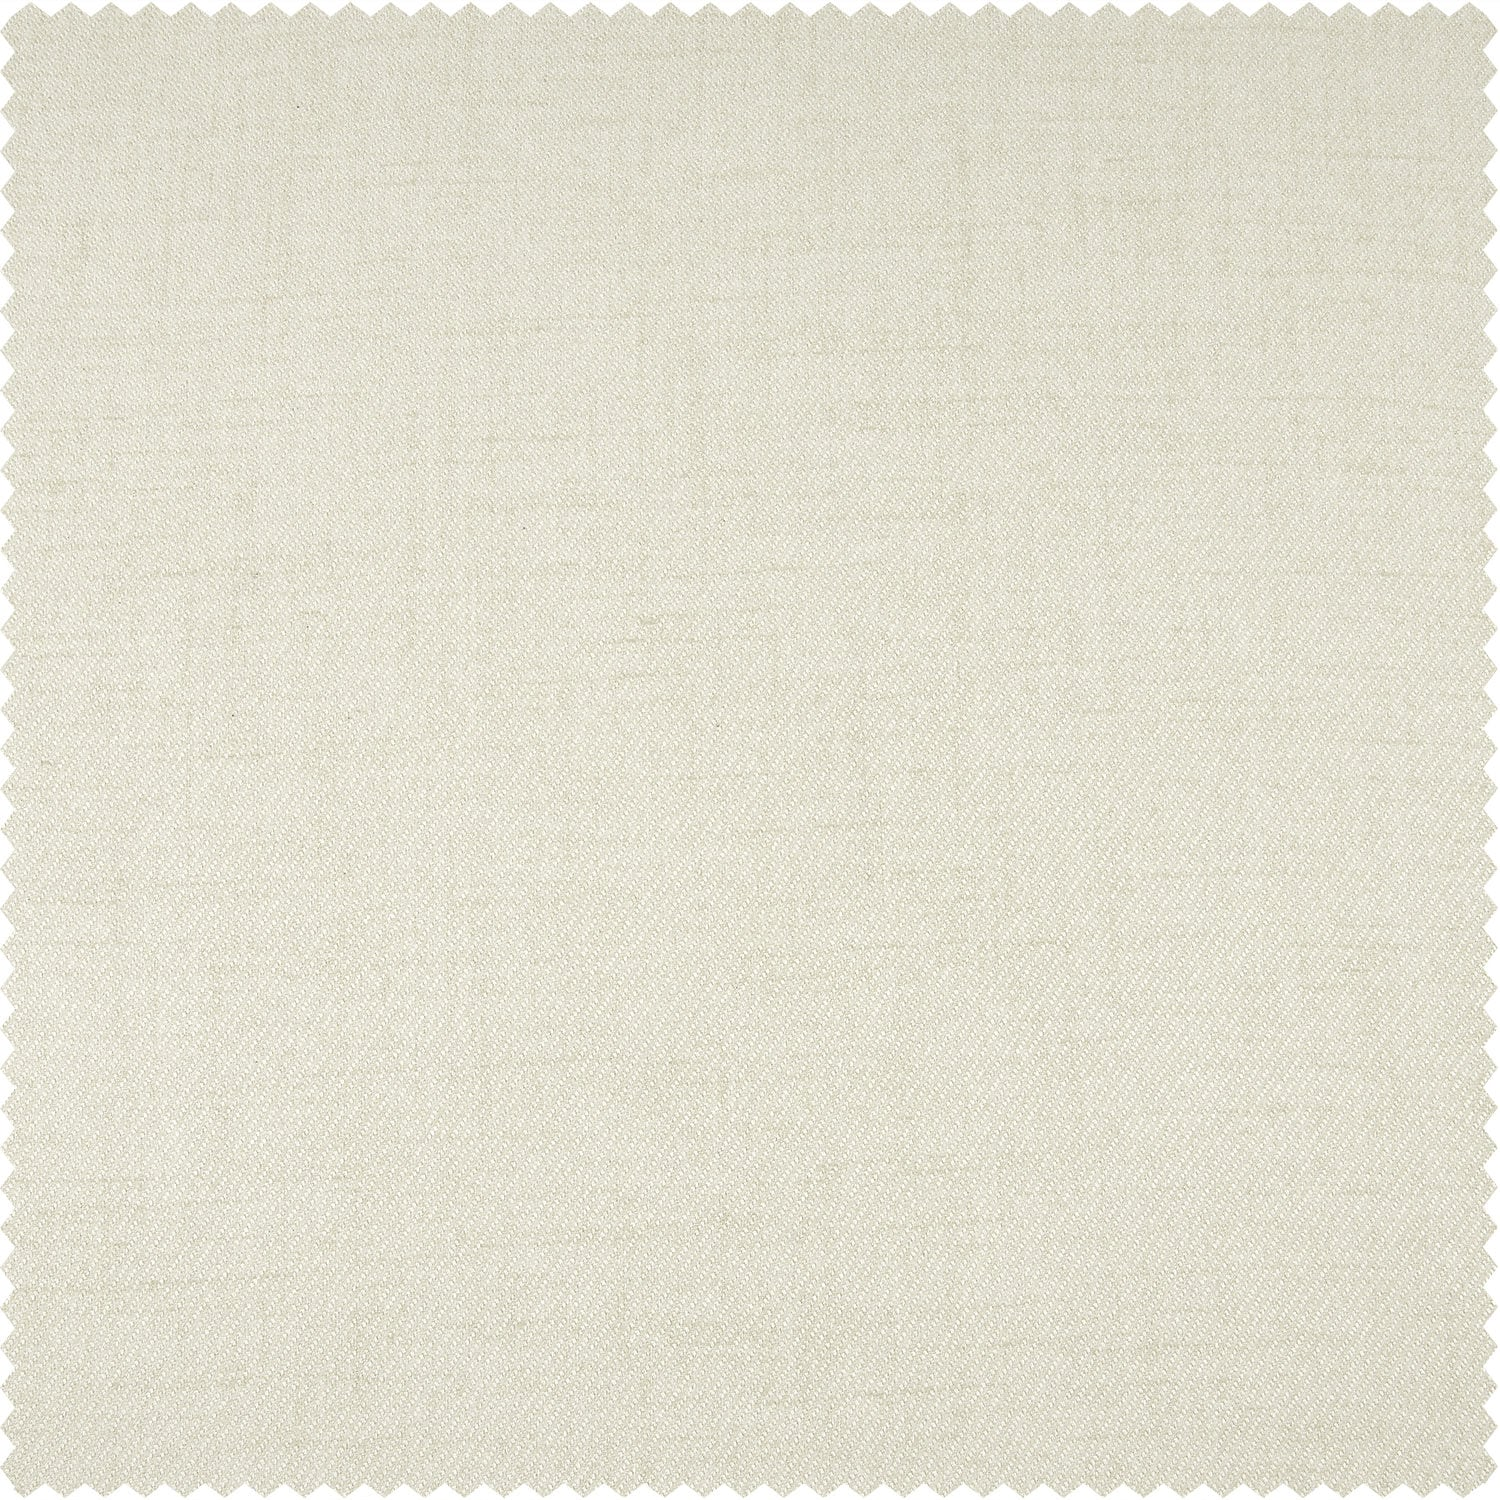 Creamy Ivory Thermal Room Darkening Heathered Italian Woolen Weave Swatch